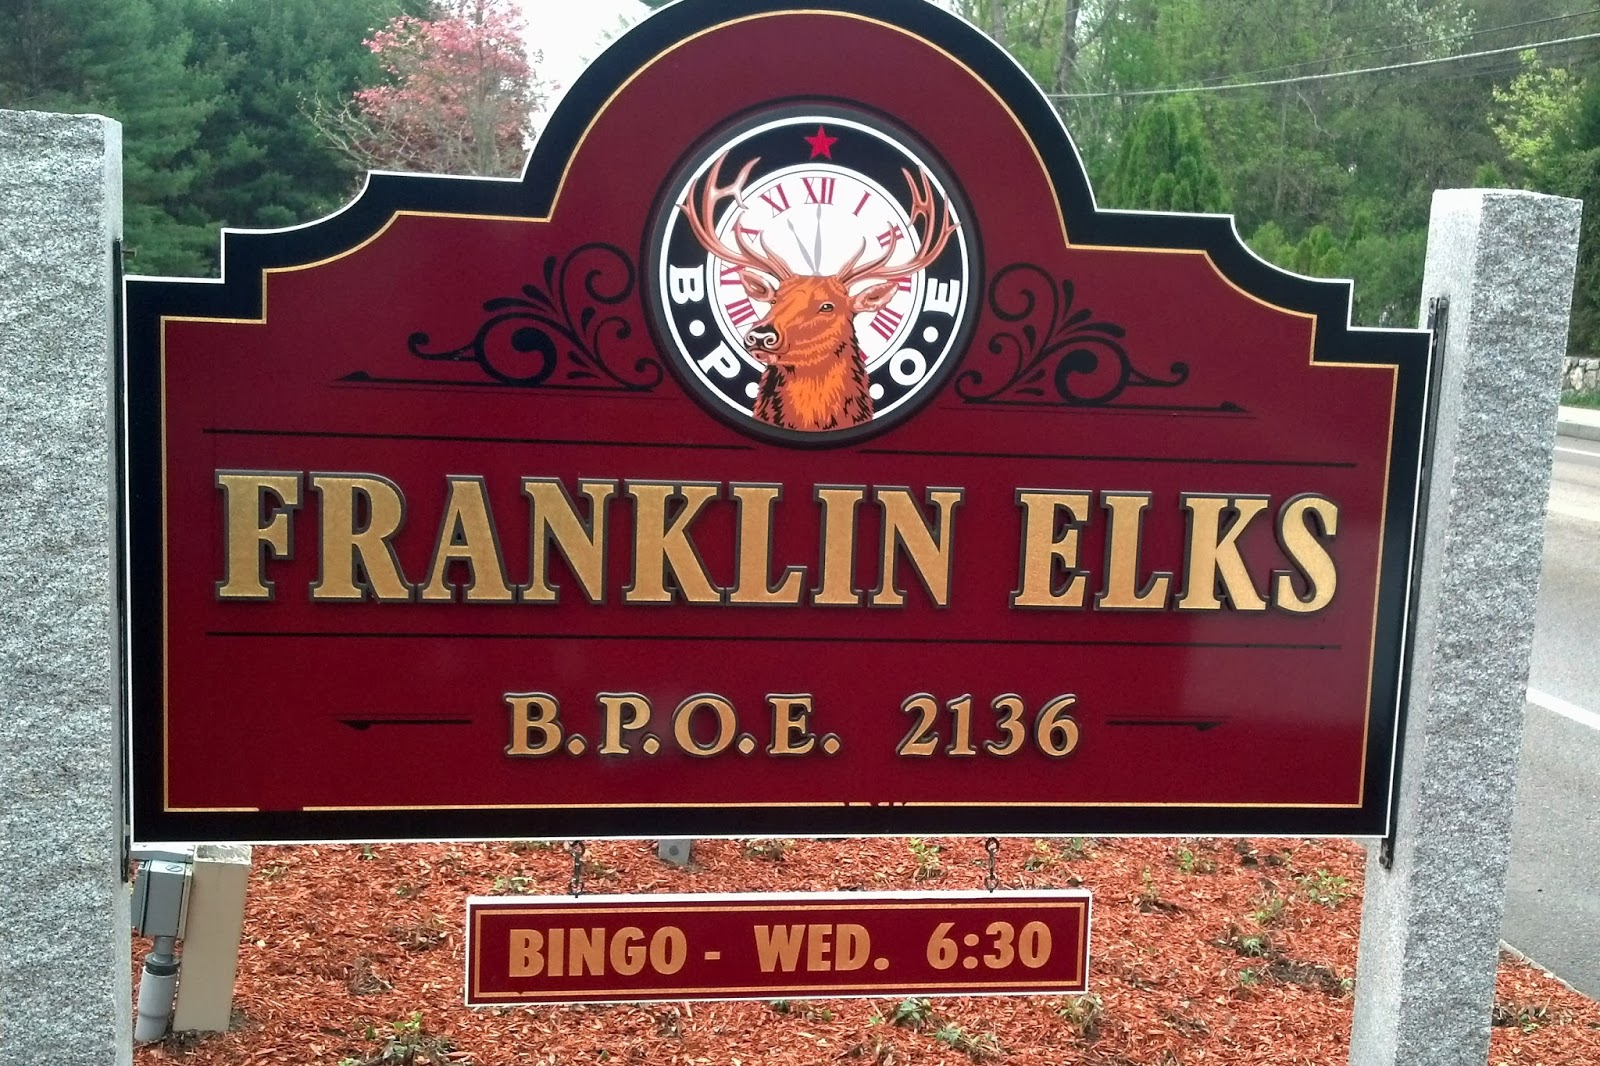 Franklin Elks